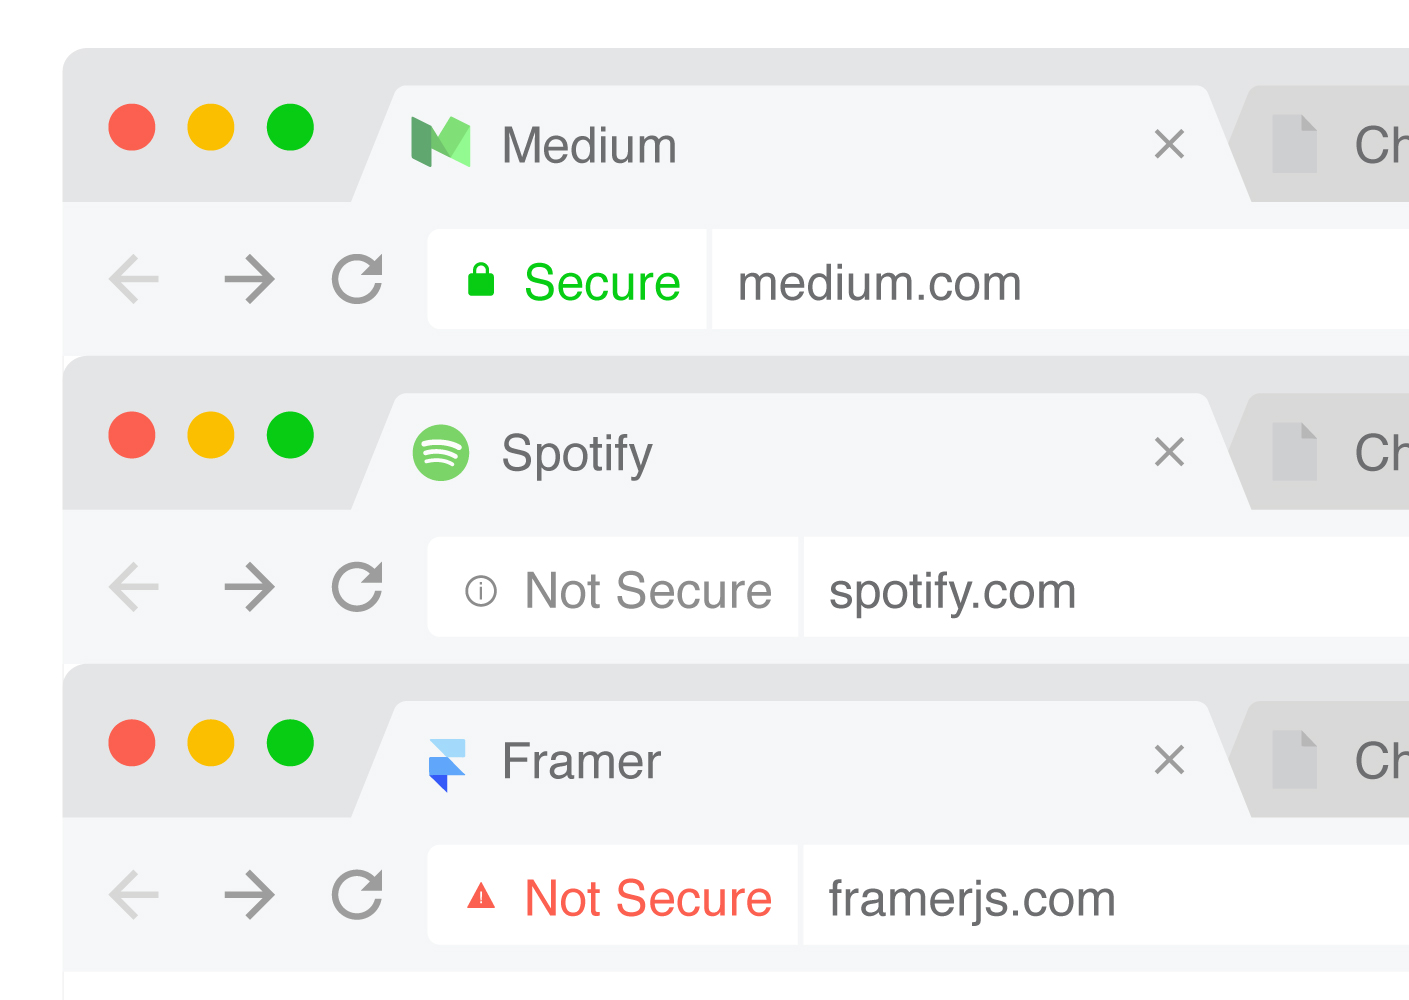 Screen mockups showing the HTTPS; secure, and not secure.